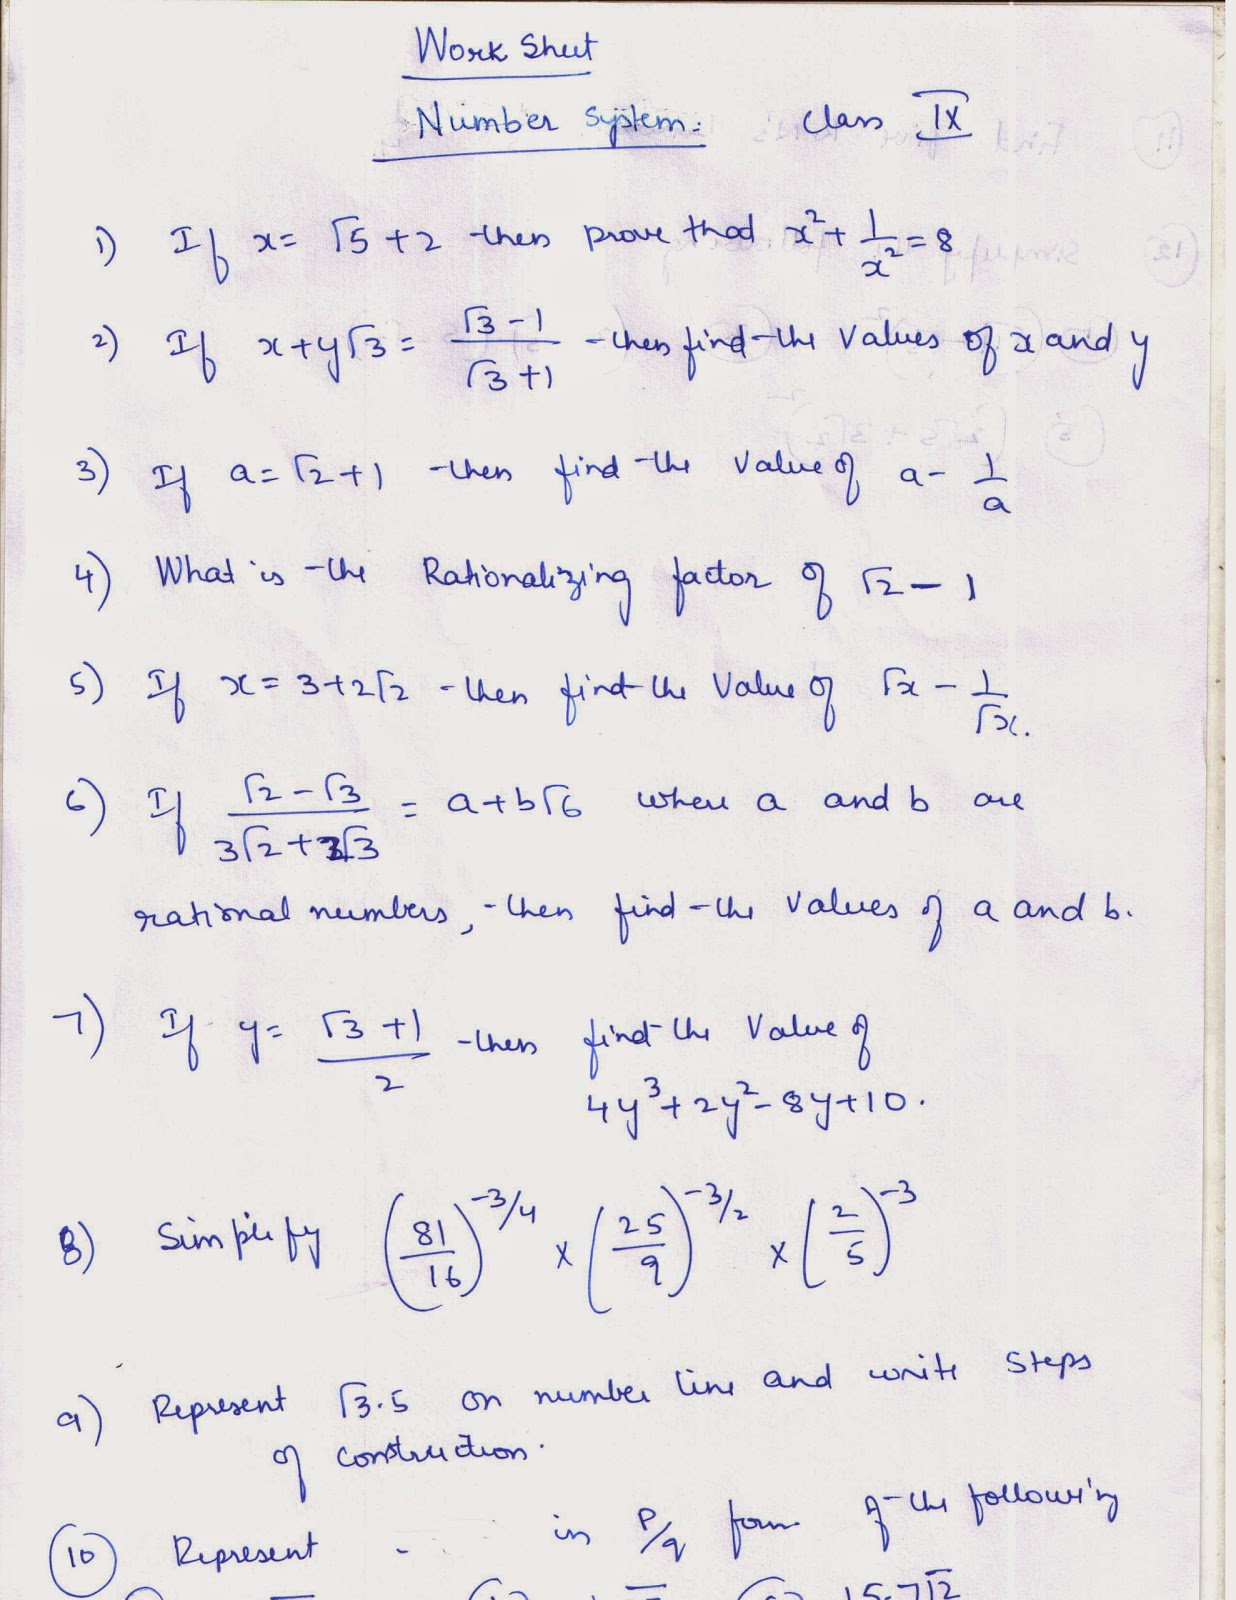 math worksheet : apsg worksheet on number system : Recurring Decimals Worksheet